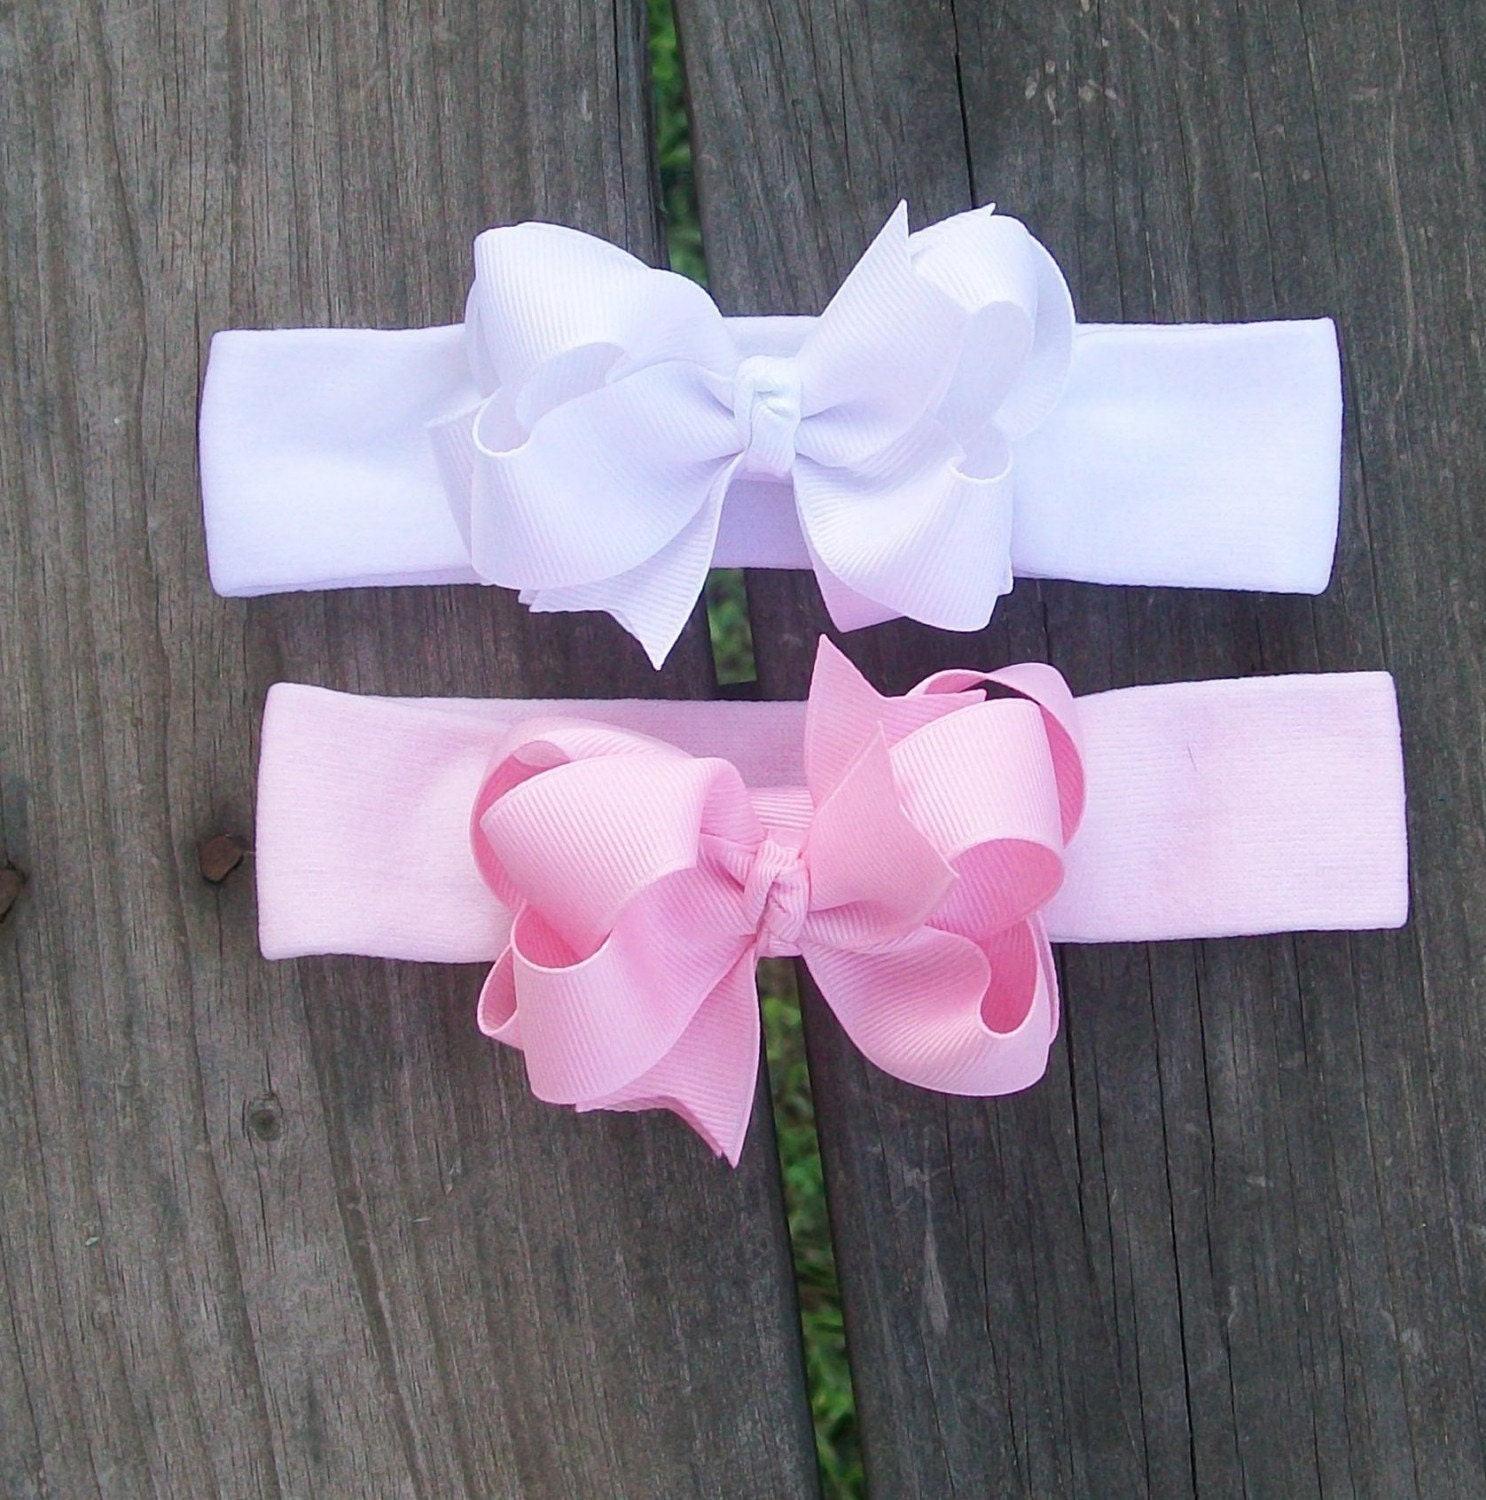 BABY'S FIRST PRINCESS BANDS.....MINI DOUBLE LAYERED BOWS AND BANDS.........ONE DOLLAR SHIPPING